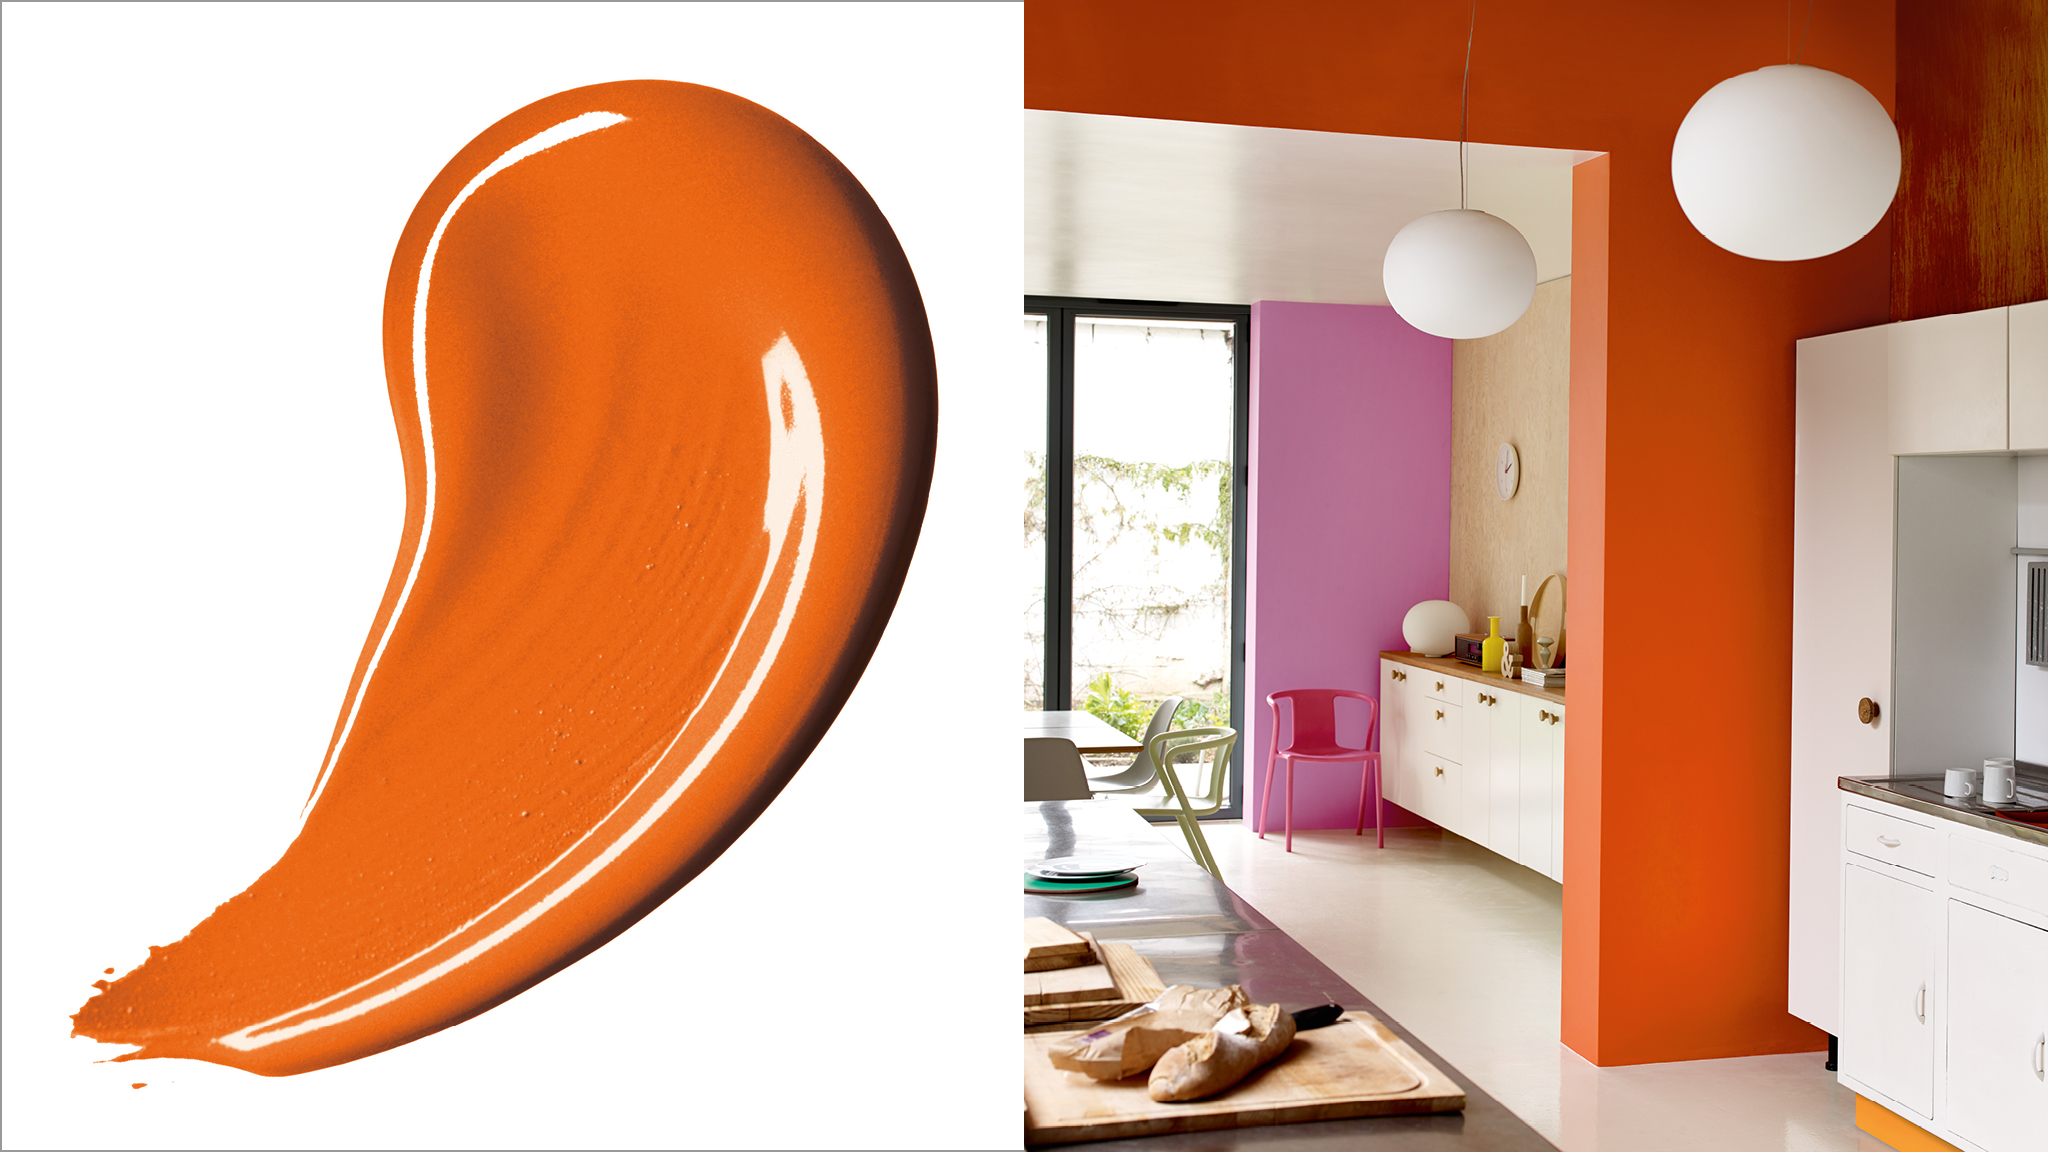 Orange fizzes with vitality. Paint it on your walls and you'll instantly create the sense that this is a happy, lively home.